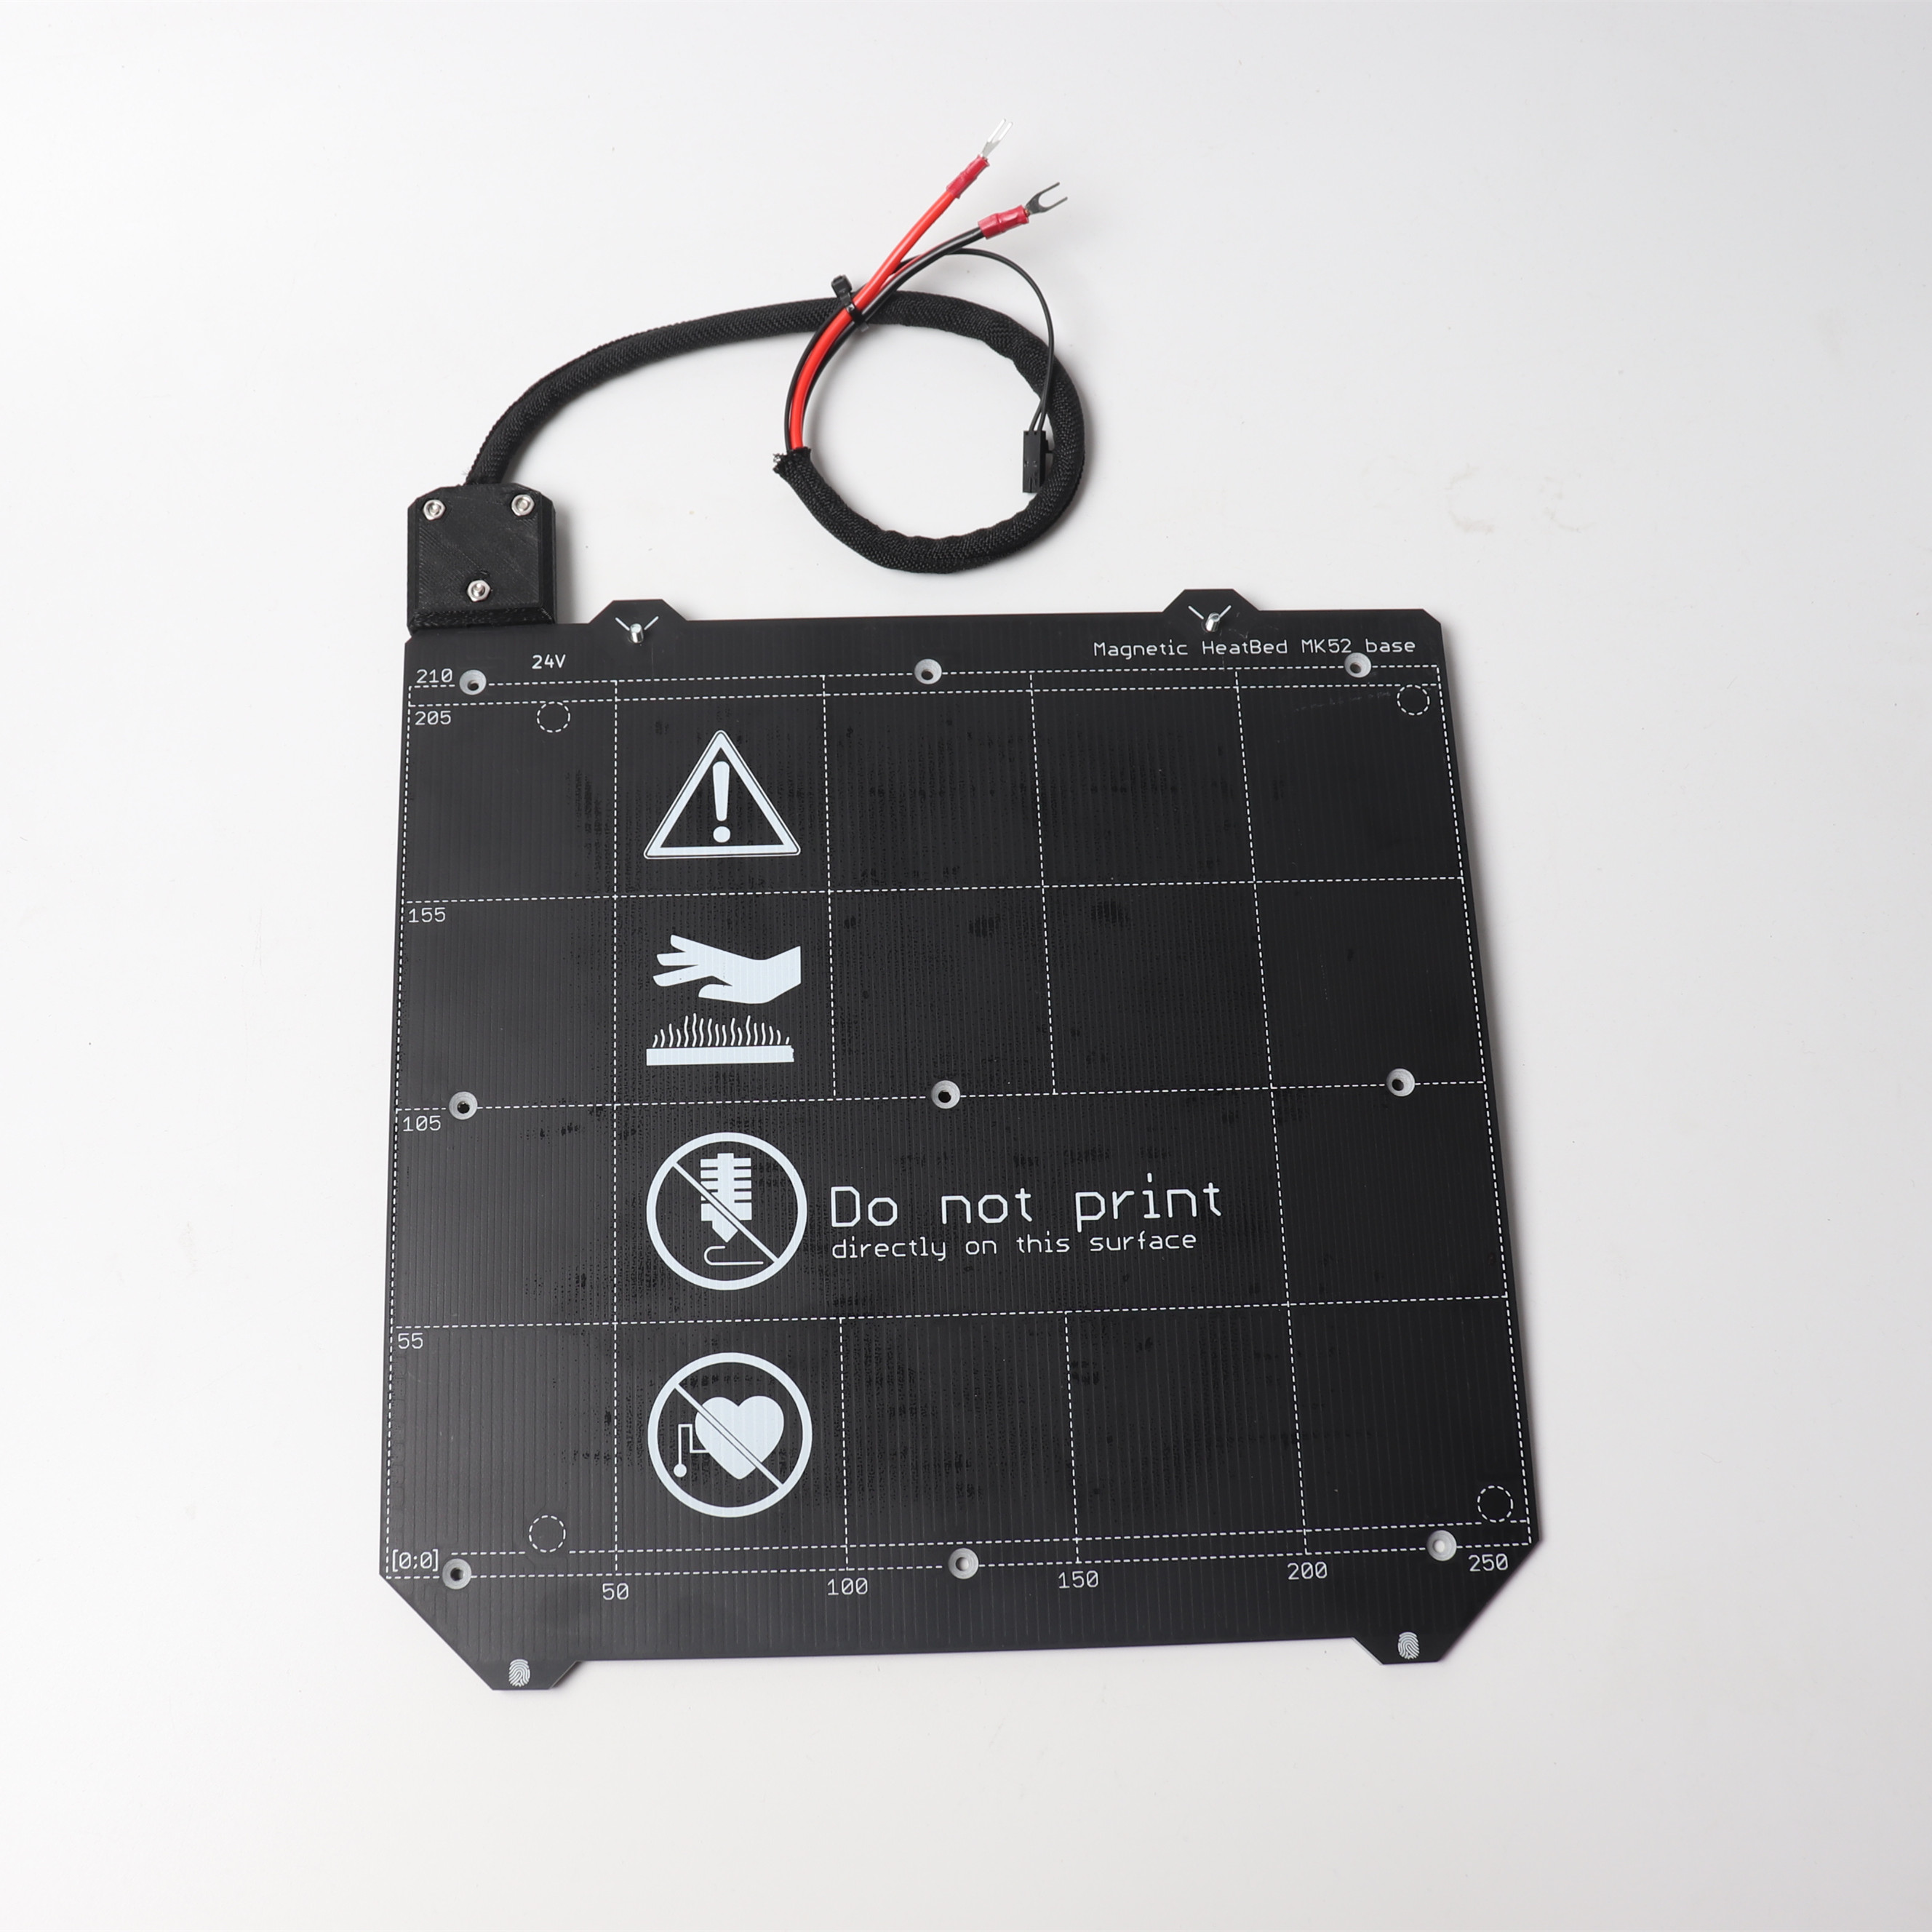 Prusa I3 MK3/MK3S 3d Printer MK52 Heated Bed 24V Assembled, N35UH Magnets, Power Cable, Thermistor, Textile Sleeve